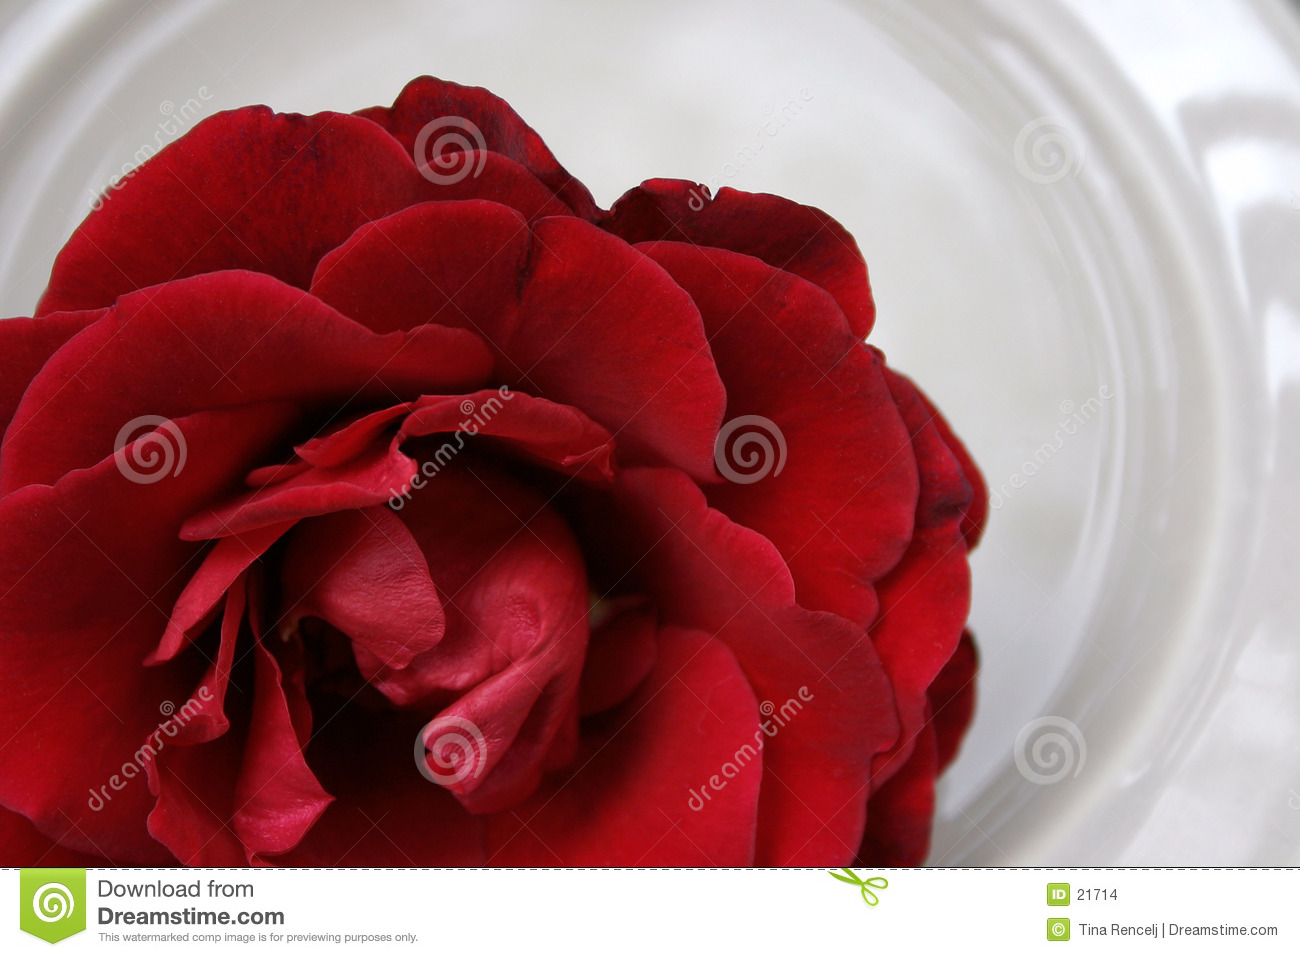 Red Rose on Porcelain